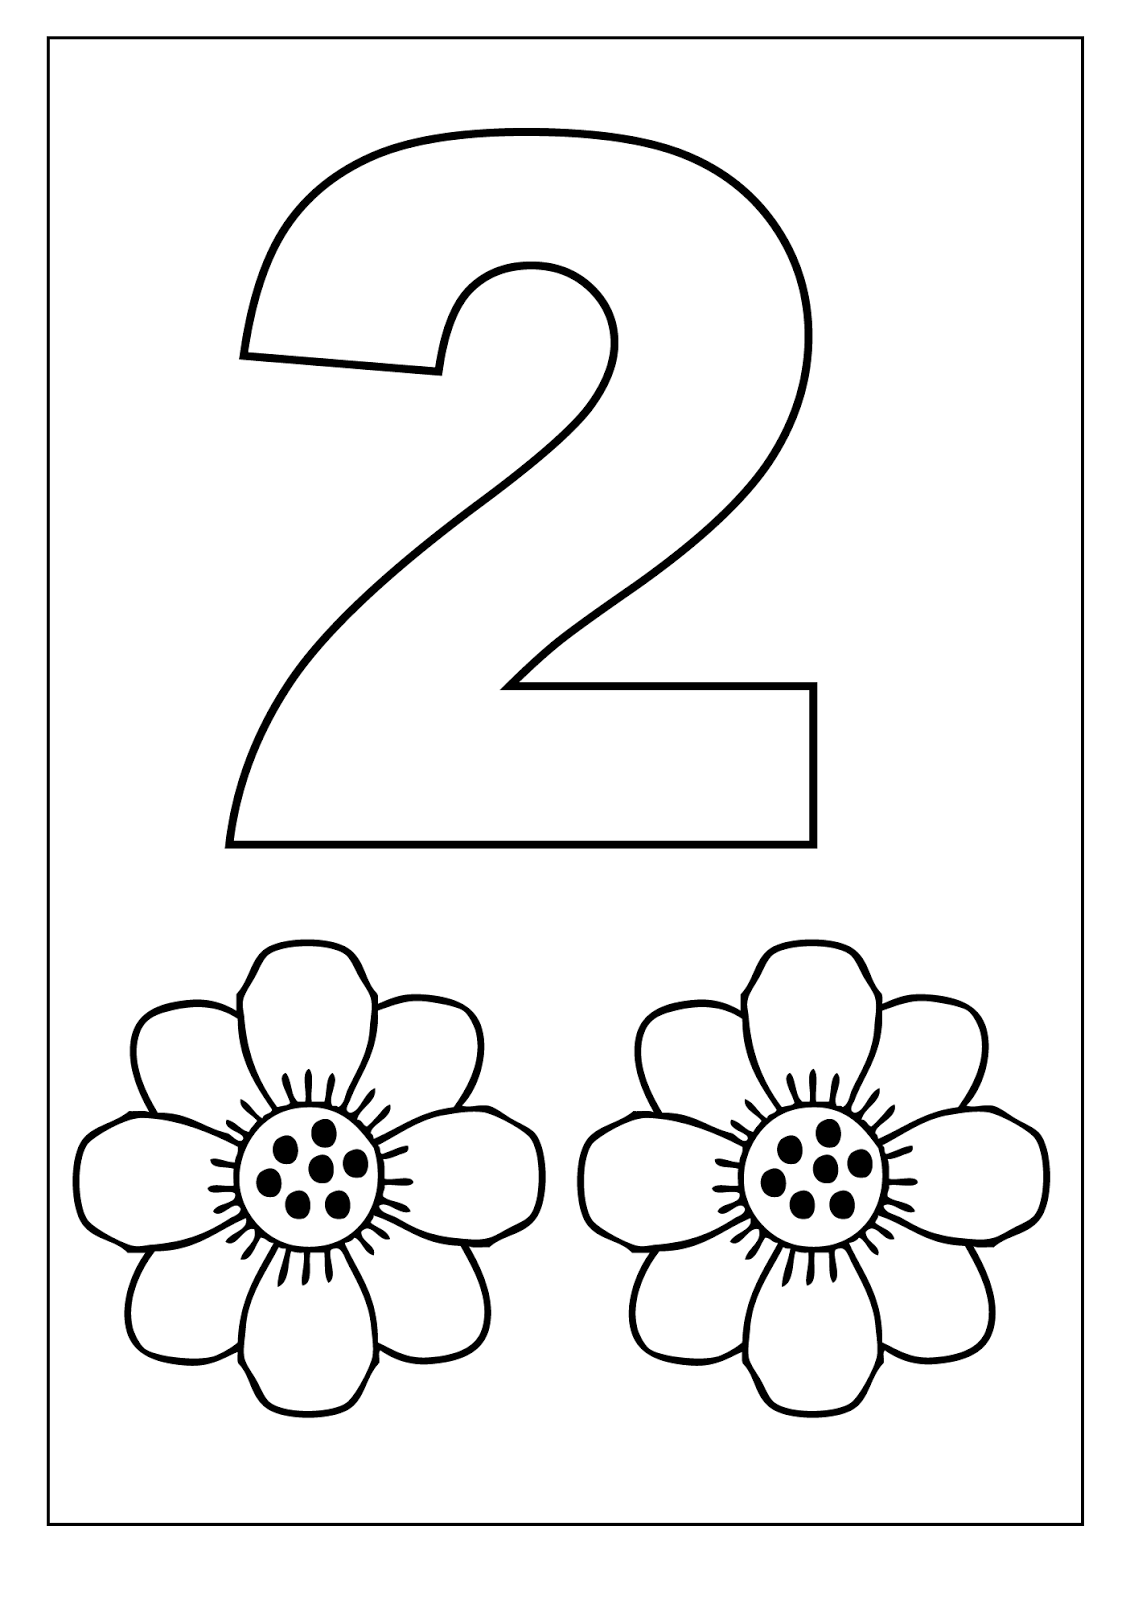 Worksheets For 2 Year Olds Number 2